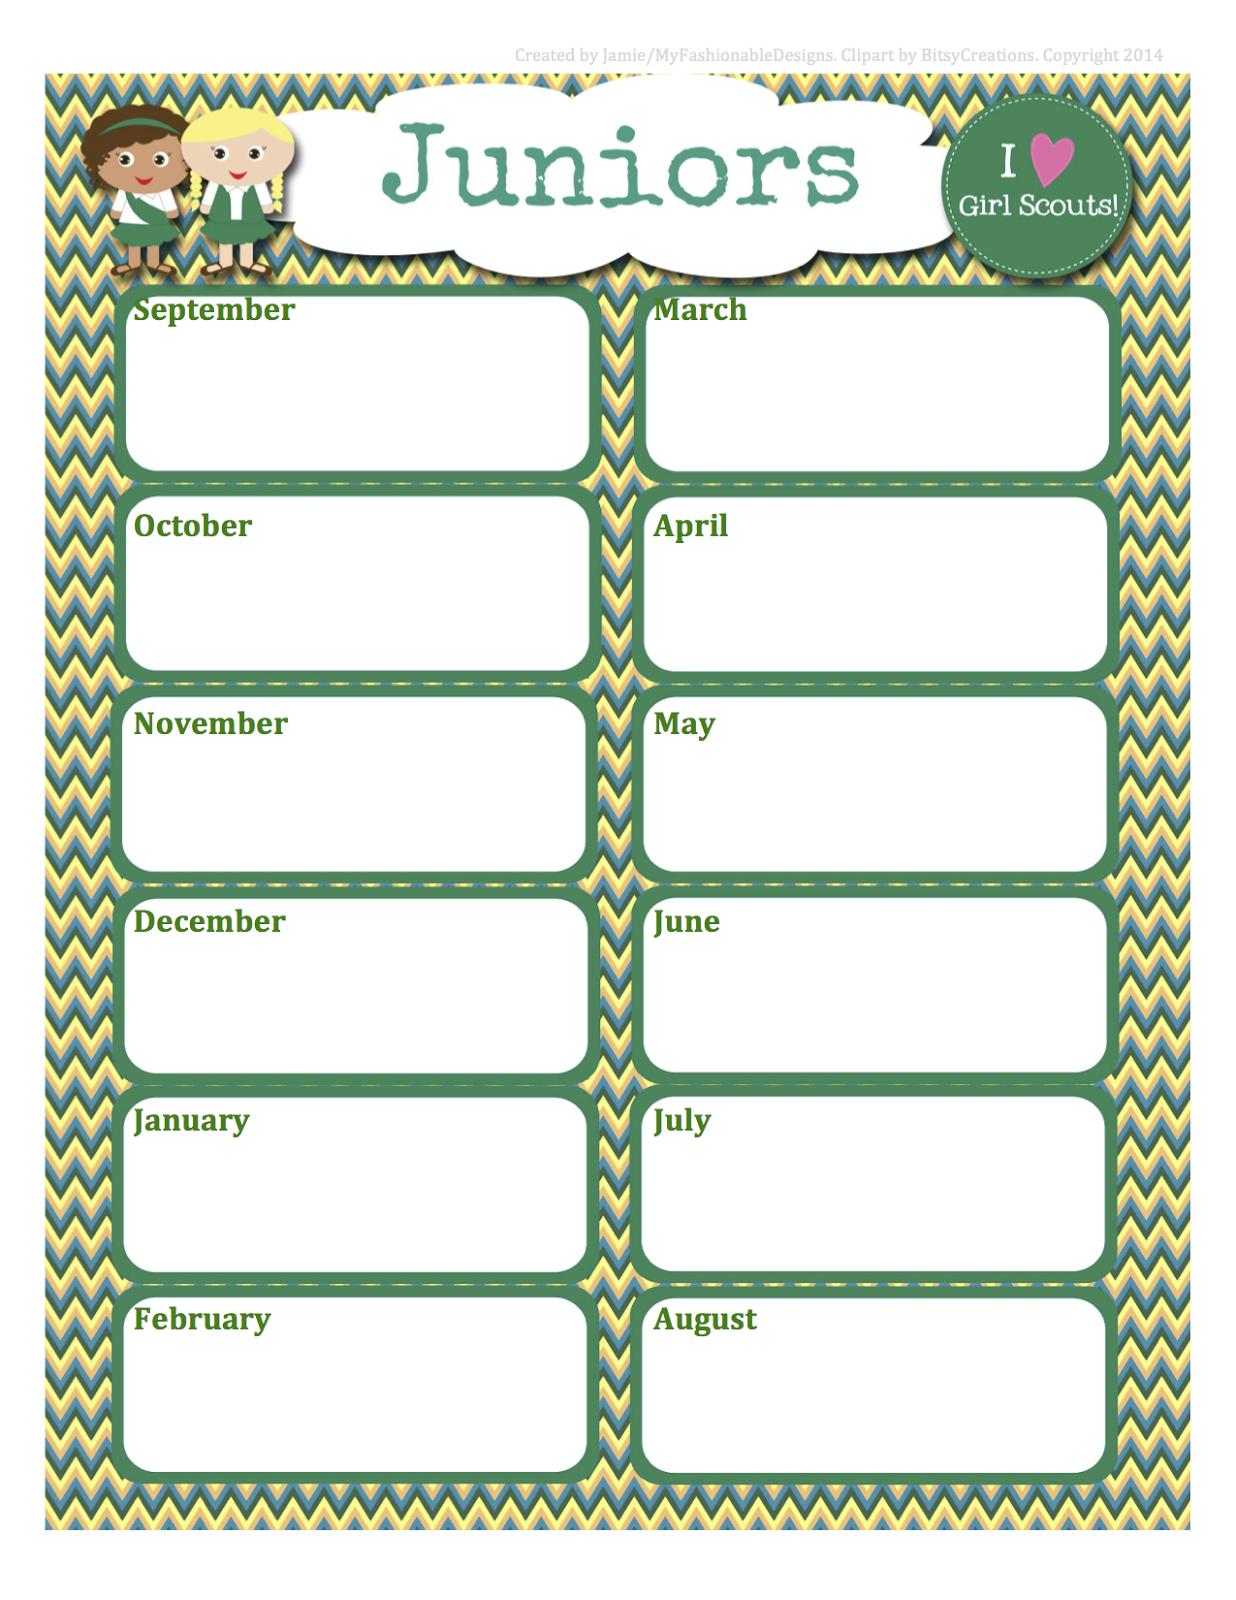 junior girl scout meeting planner The junior planning guide is an online resource to help junior troops and juliettes complete journeys and badges this guide includes many of the badge and award options for girl scout juniors as well as downloadable activity plans journeys consist of three activity plans, and badges consist of one or two activity plans.